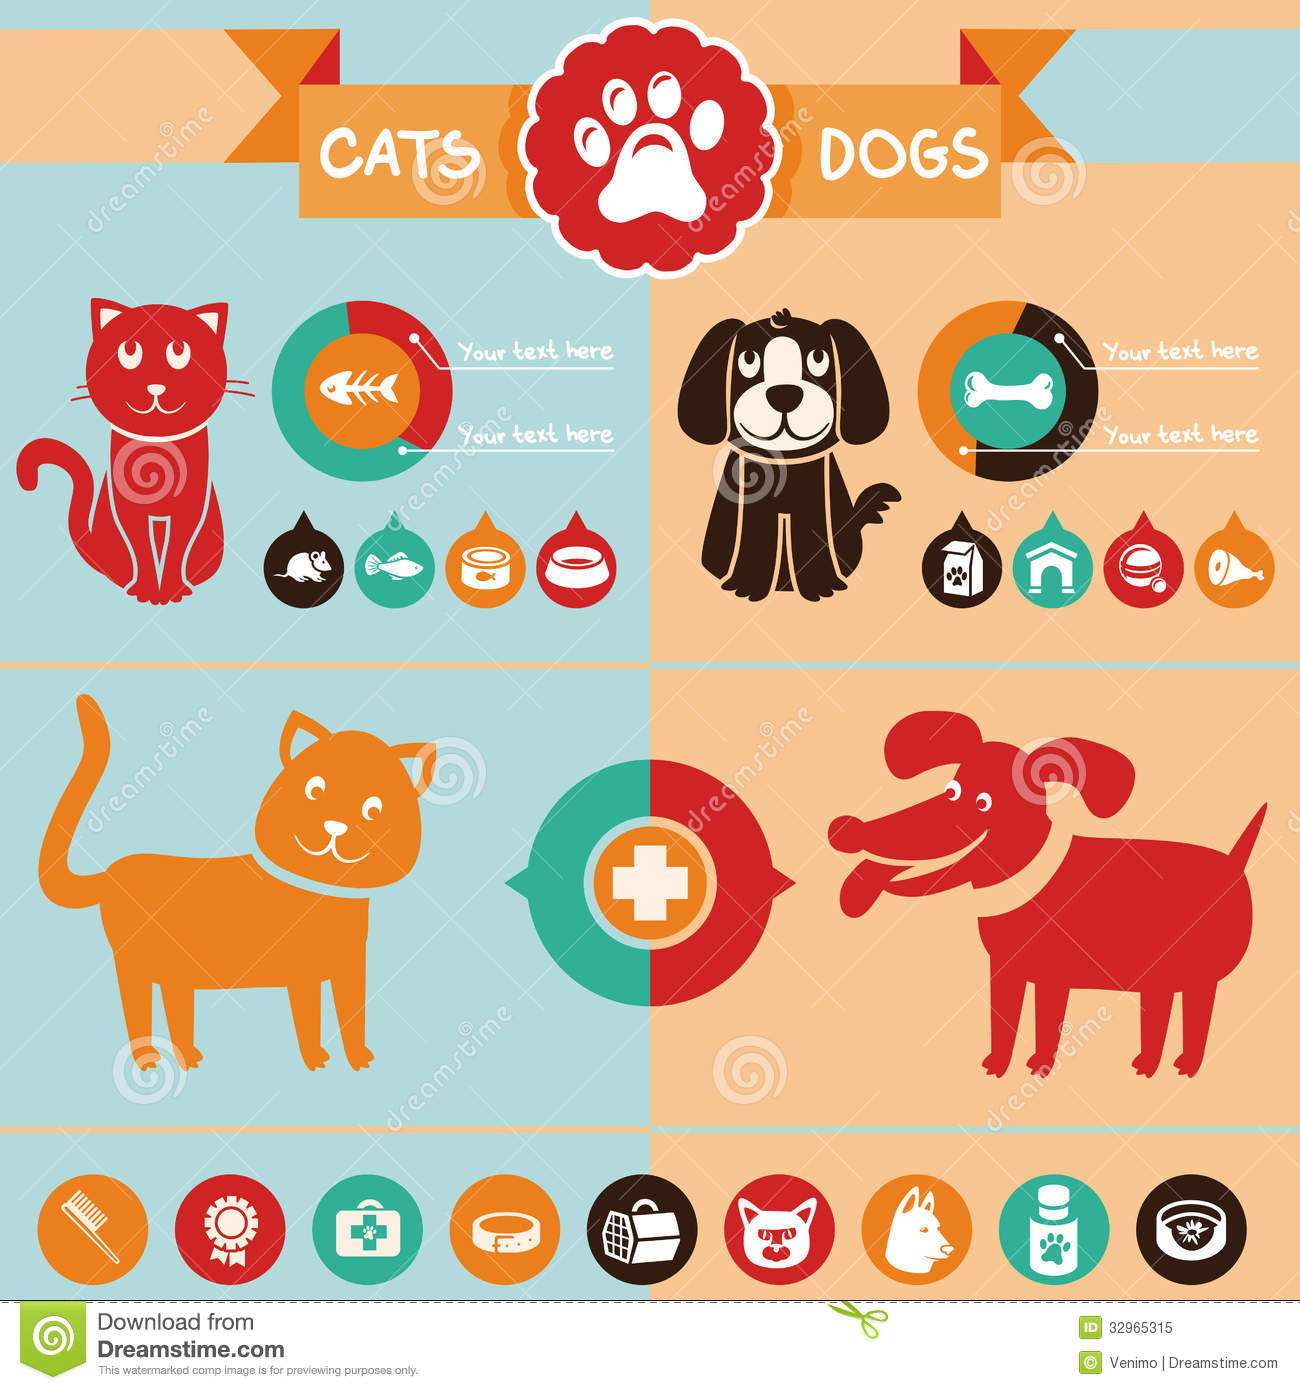 How To Start A Pet Rescue Organization